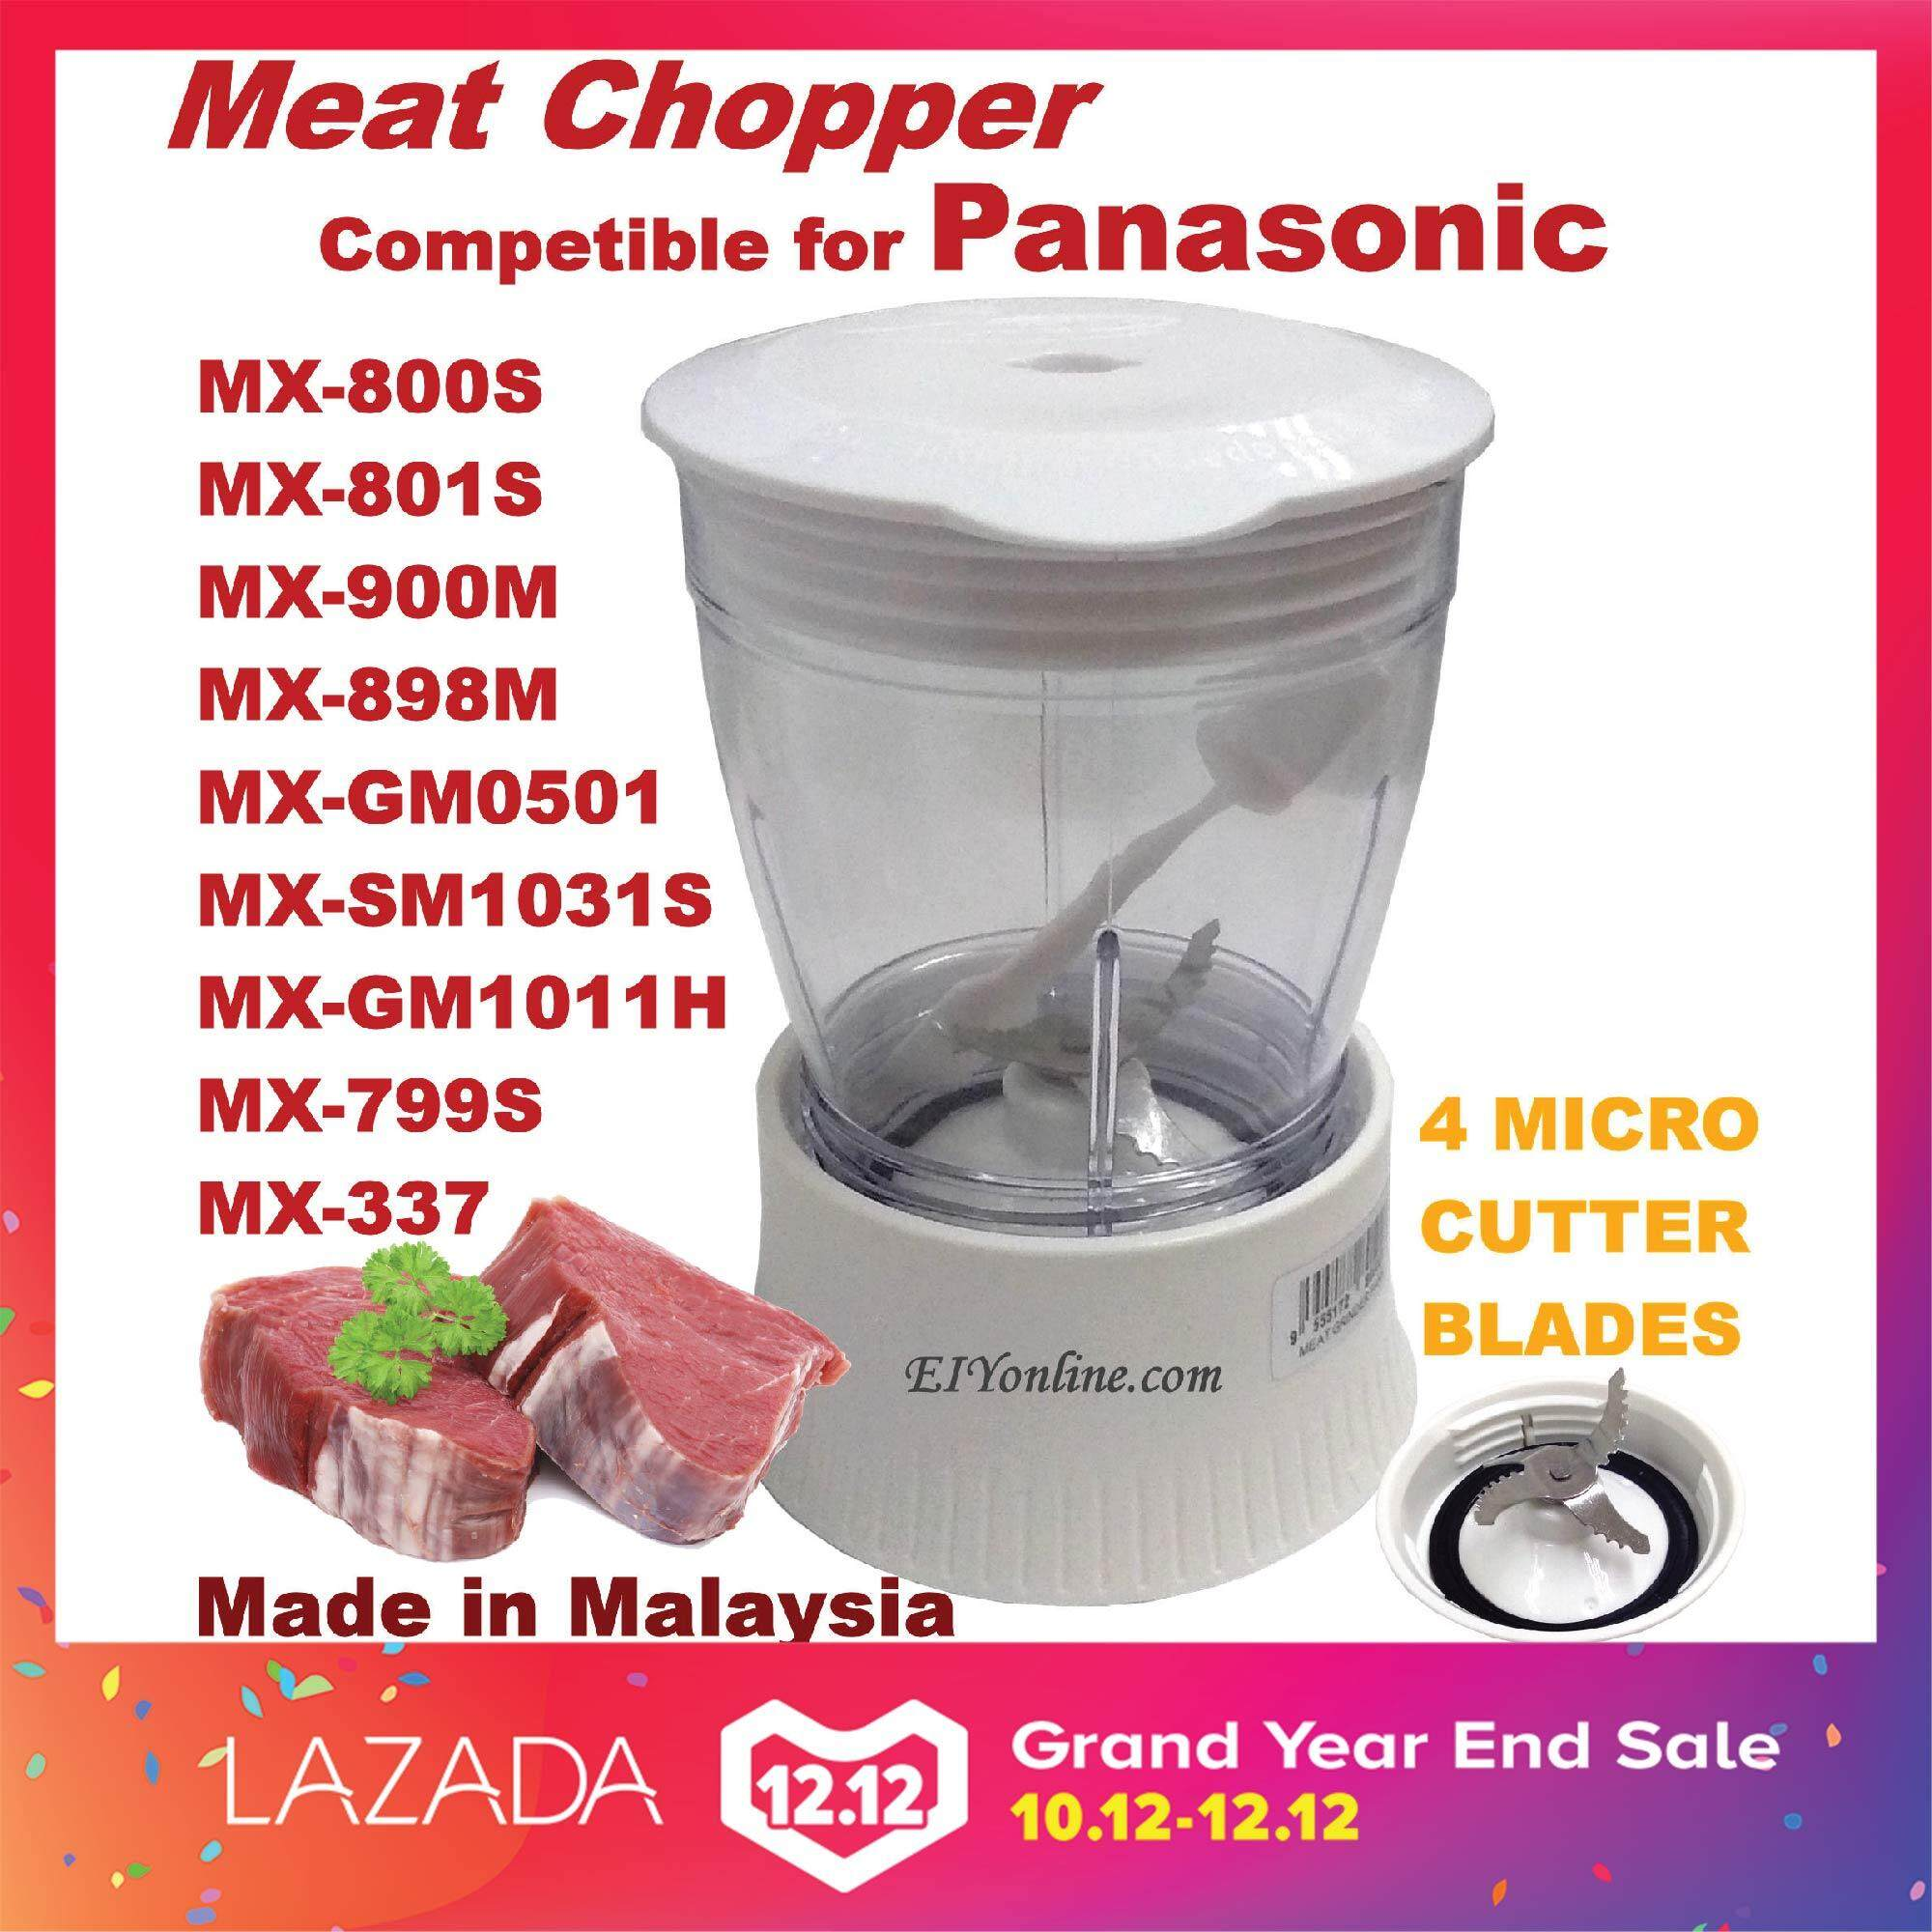 MEAT CHOPPER GRINDER DRY MILL SMALL JUG FOR PANASONIC MX-GM1011H, MX-800S,  MX-801S, MX-900M, MX-337, MX-898M, MX-SM1031S, MX-GM0501, MX-799S Dry Mill